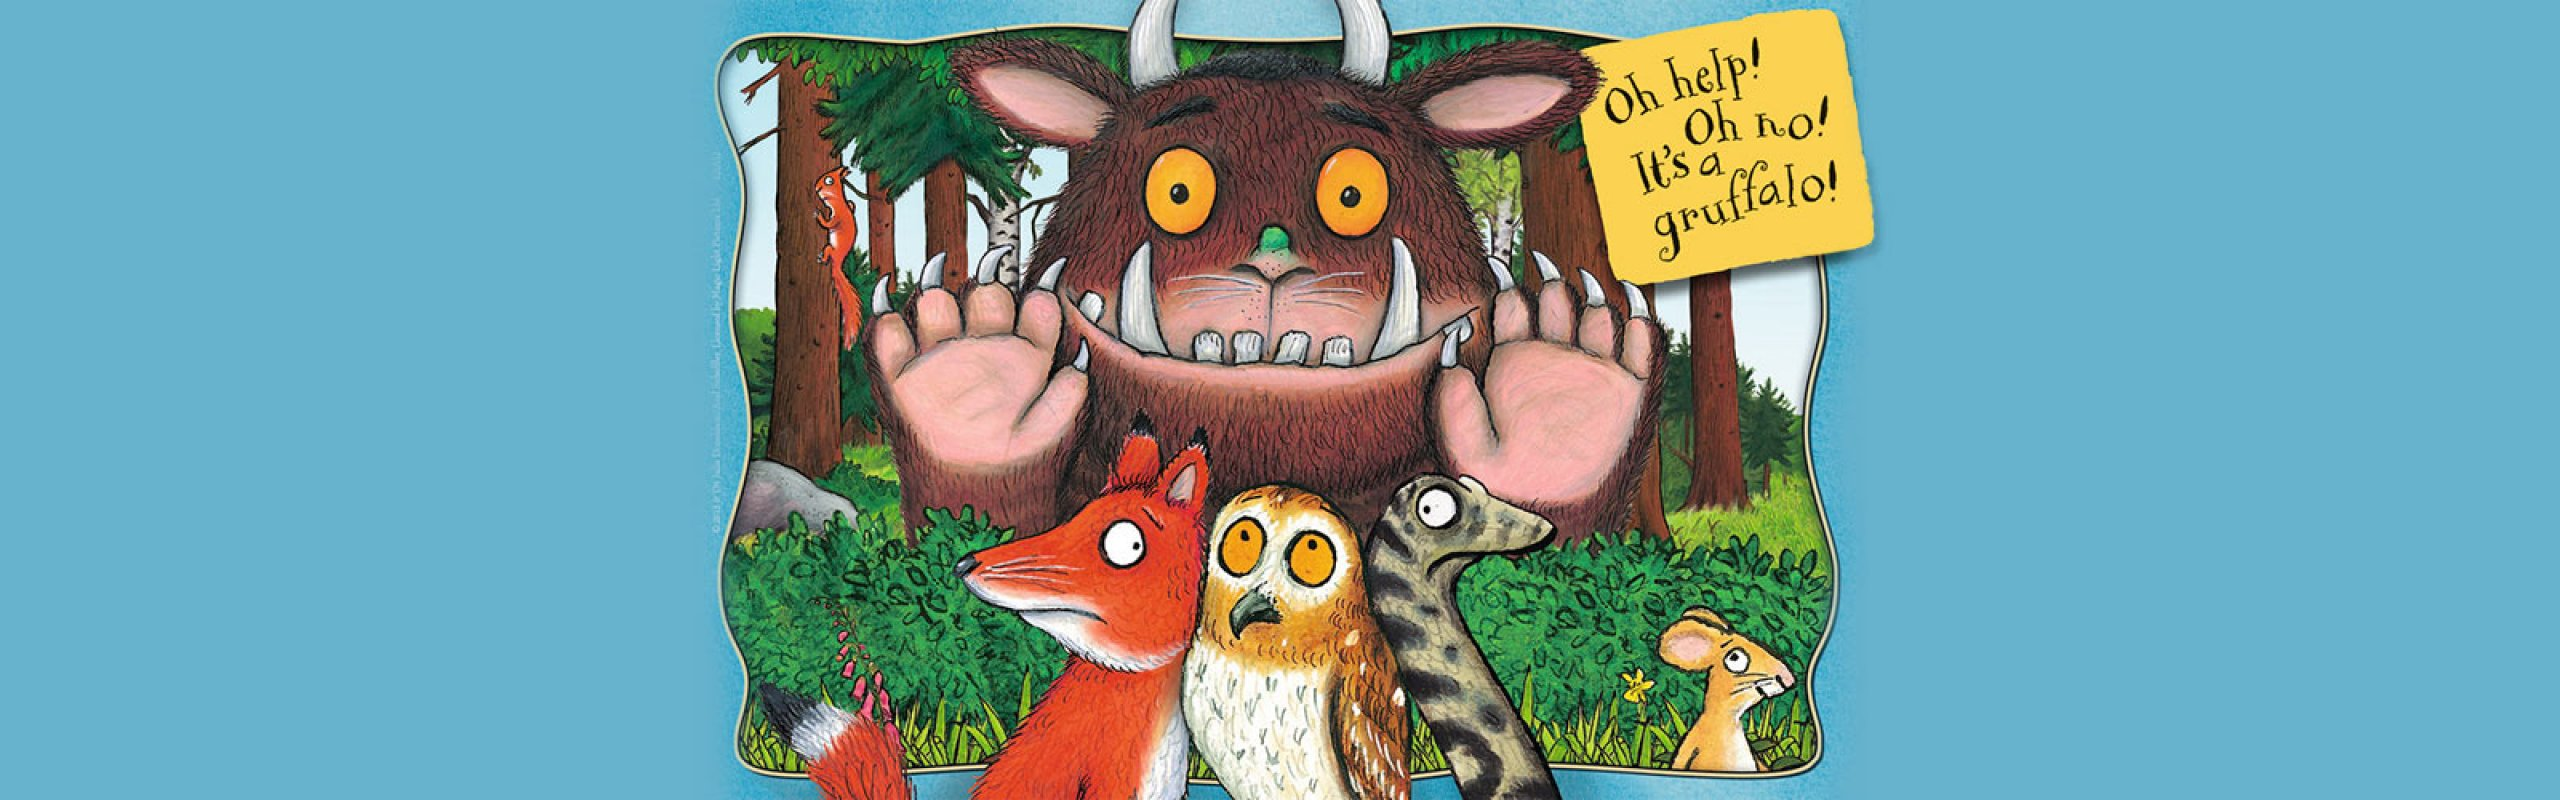 It's Storytime! The Gruffalo